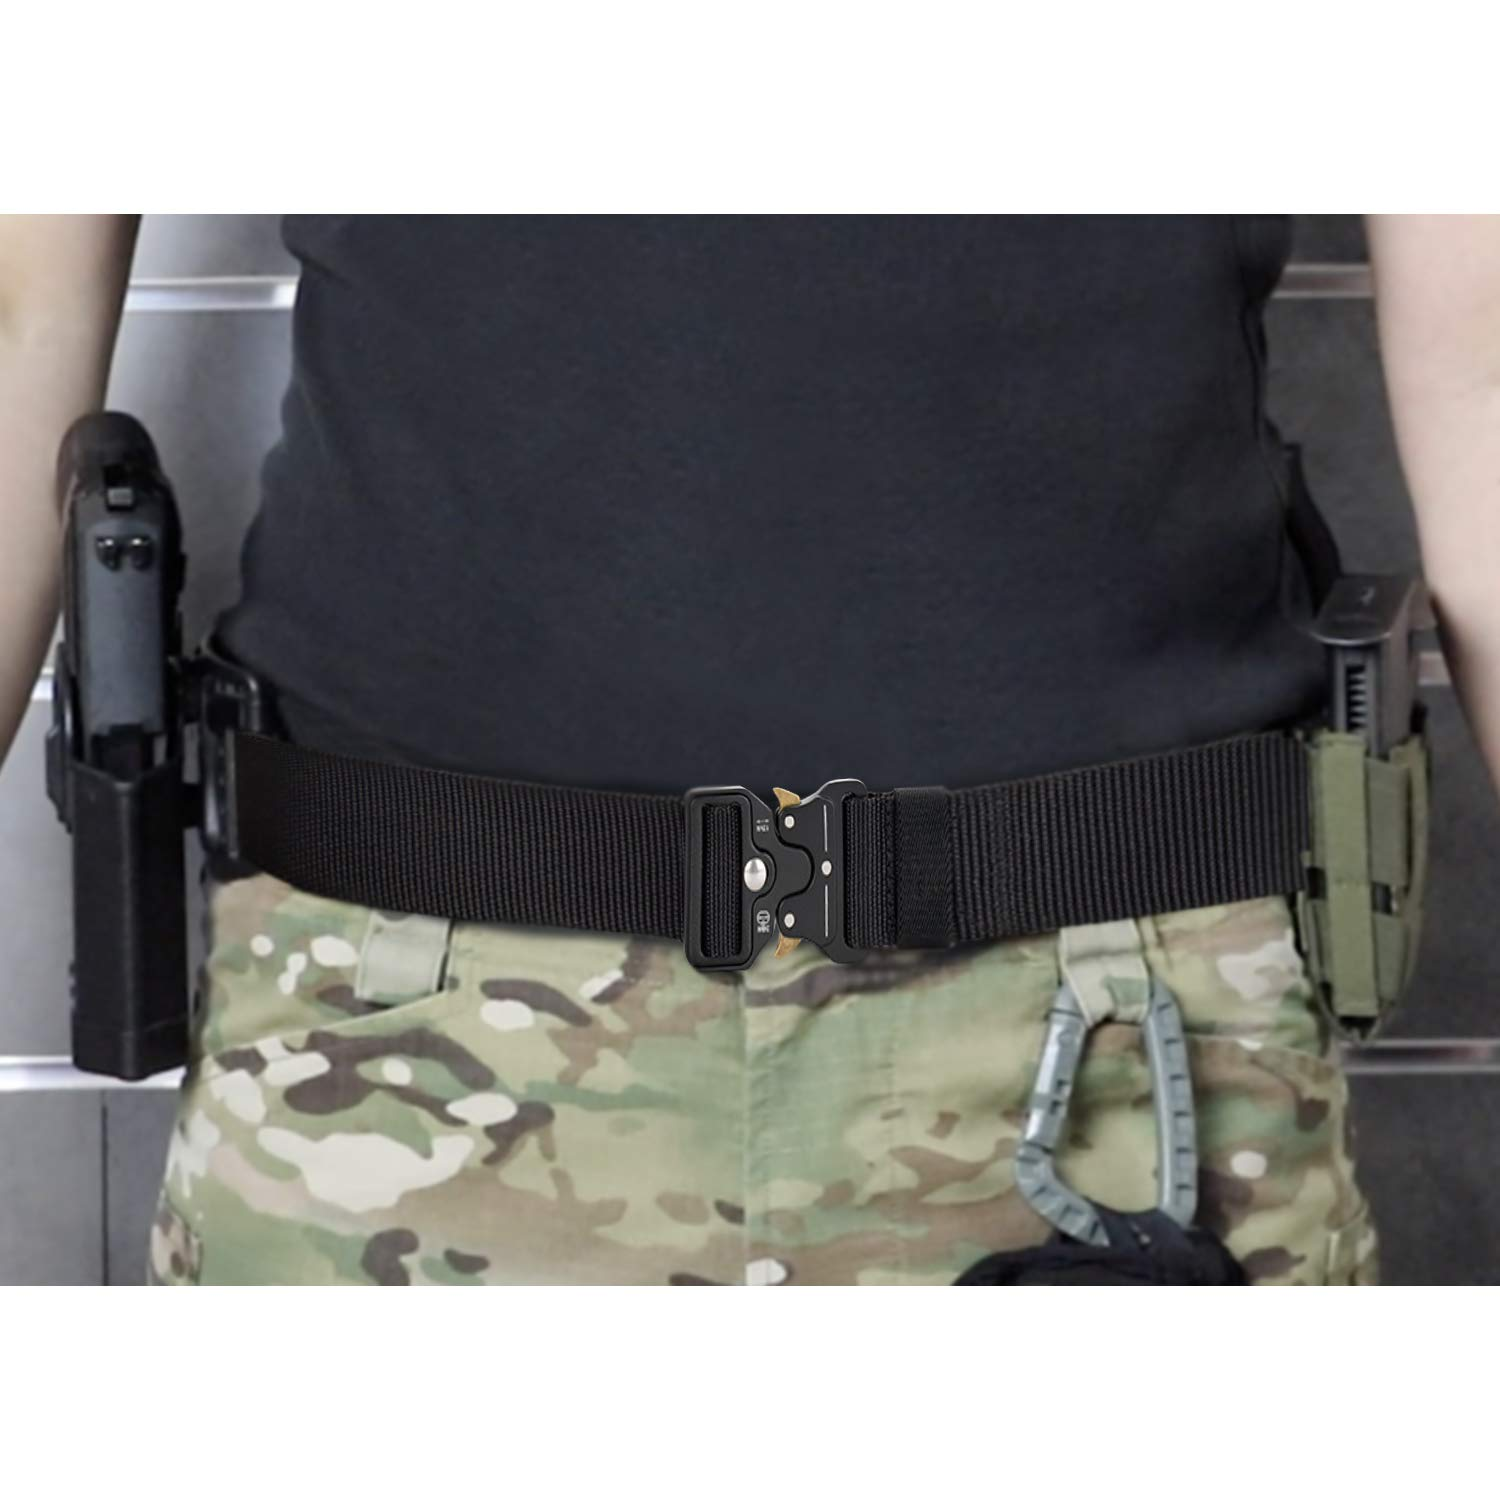 Tactical Belt Gun Adjustable Belts Military Style Webbing Riggers Nylon Belt with Heavy-Duty Metal Buckle and 49 Inches Longth Gun Belts Fits for Waist from 30 to 46 Inches with Gear Clip